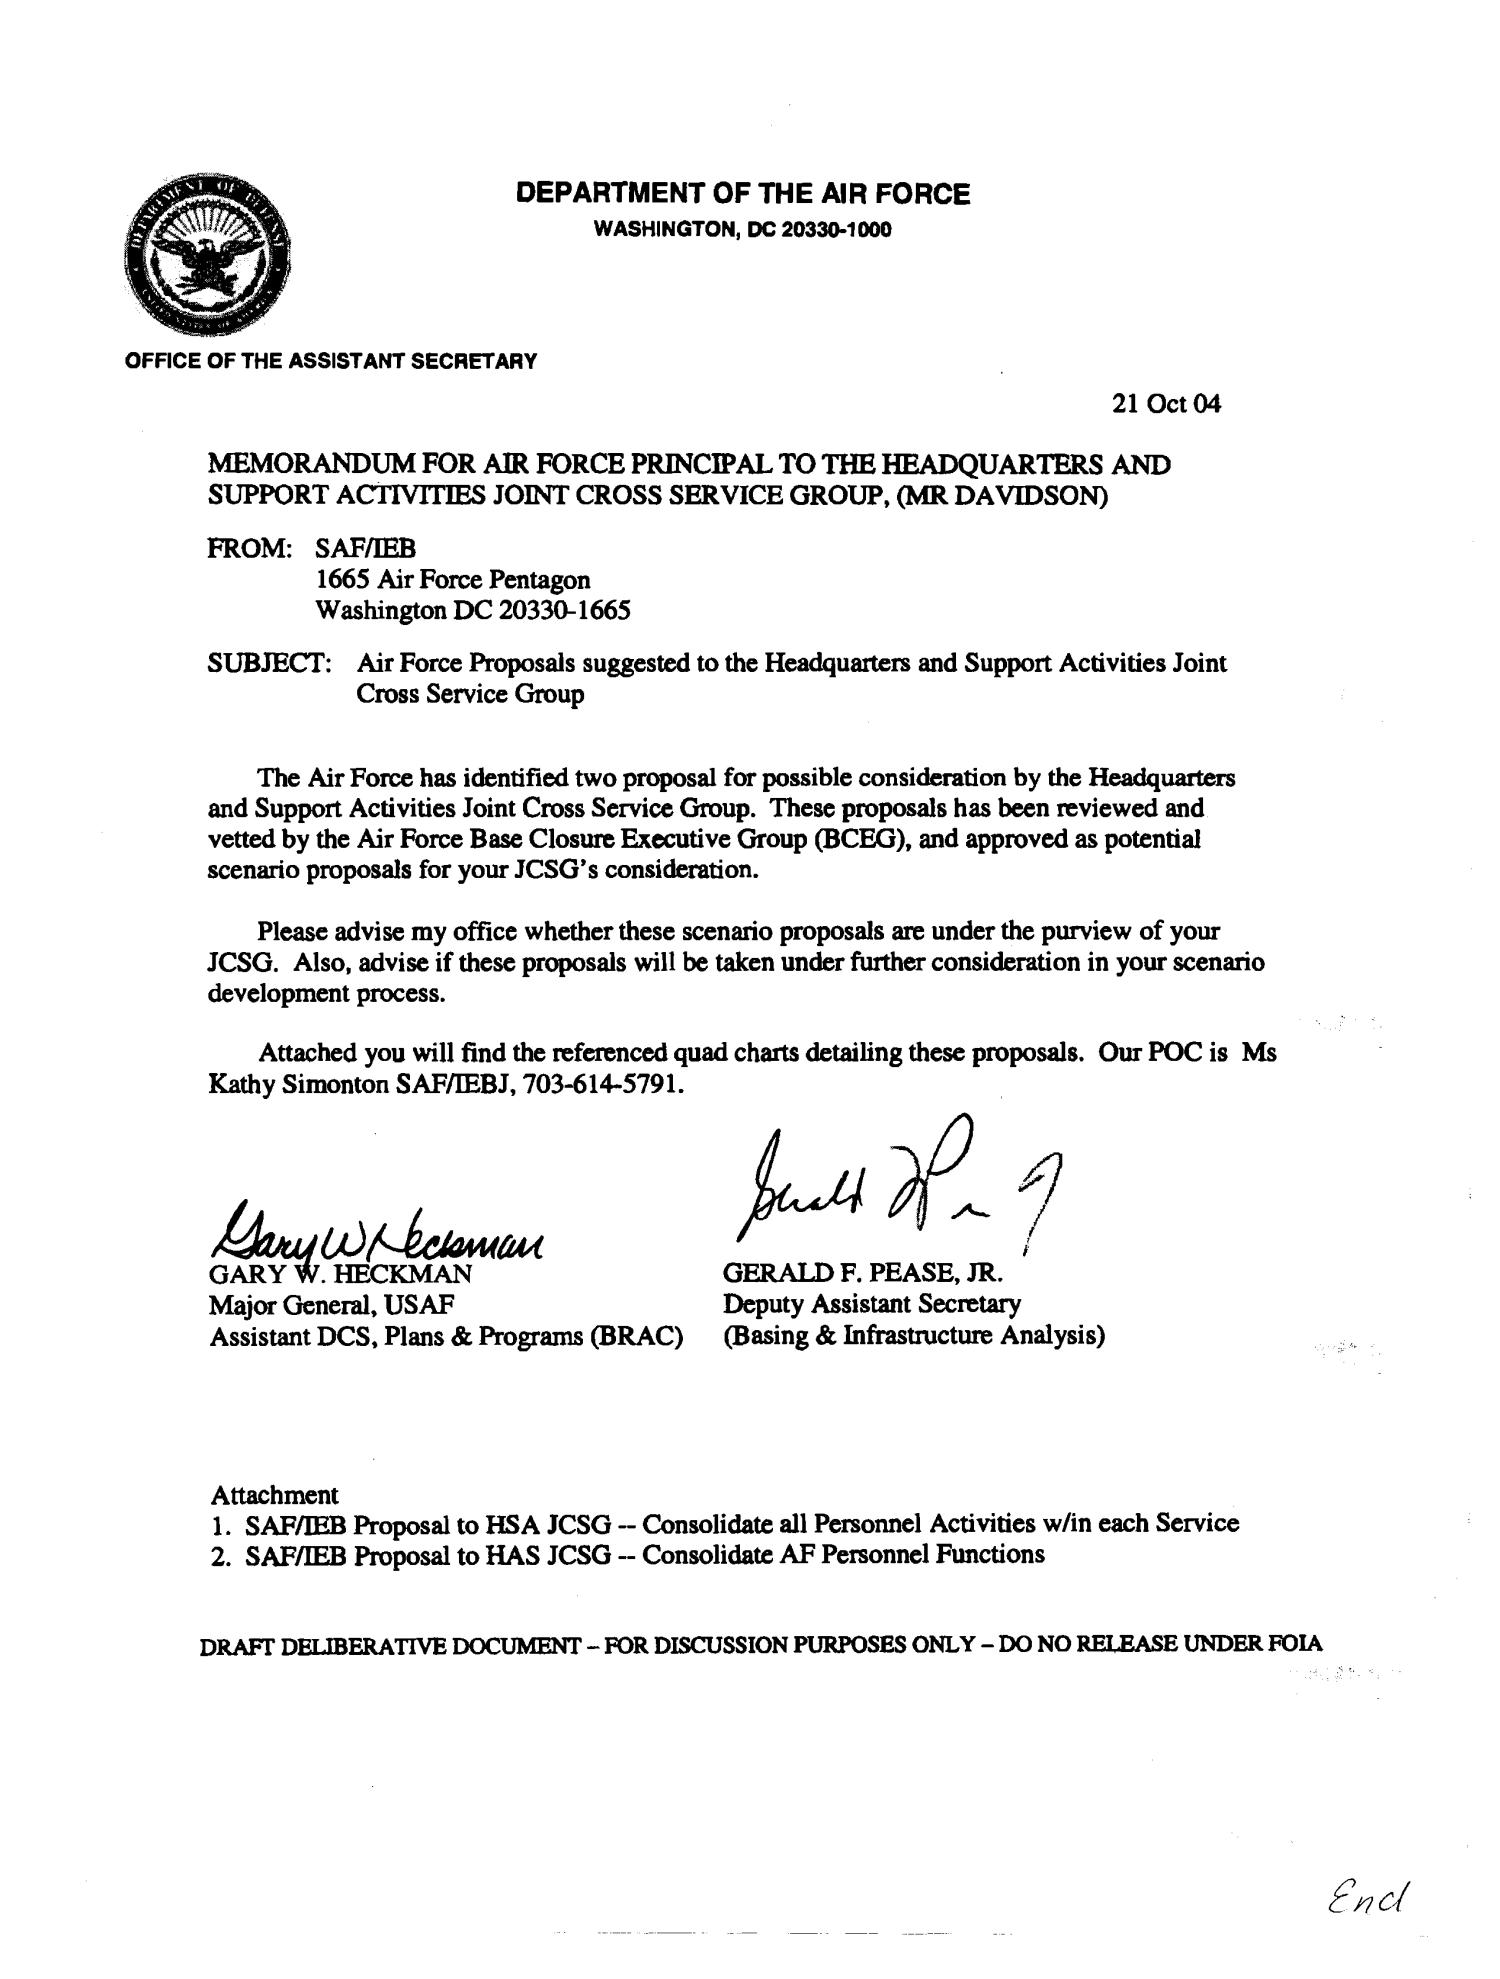 Memo on air force proposals to realign military and for Air force mfr template